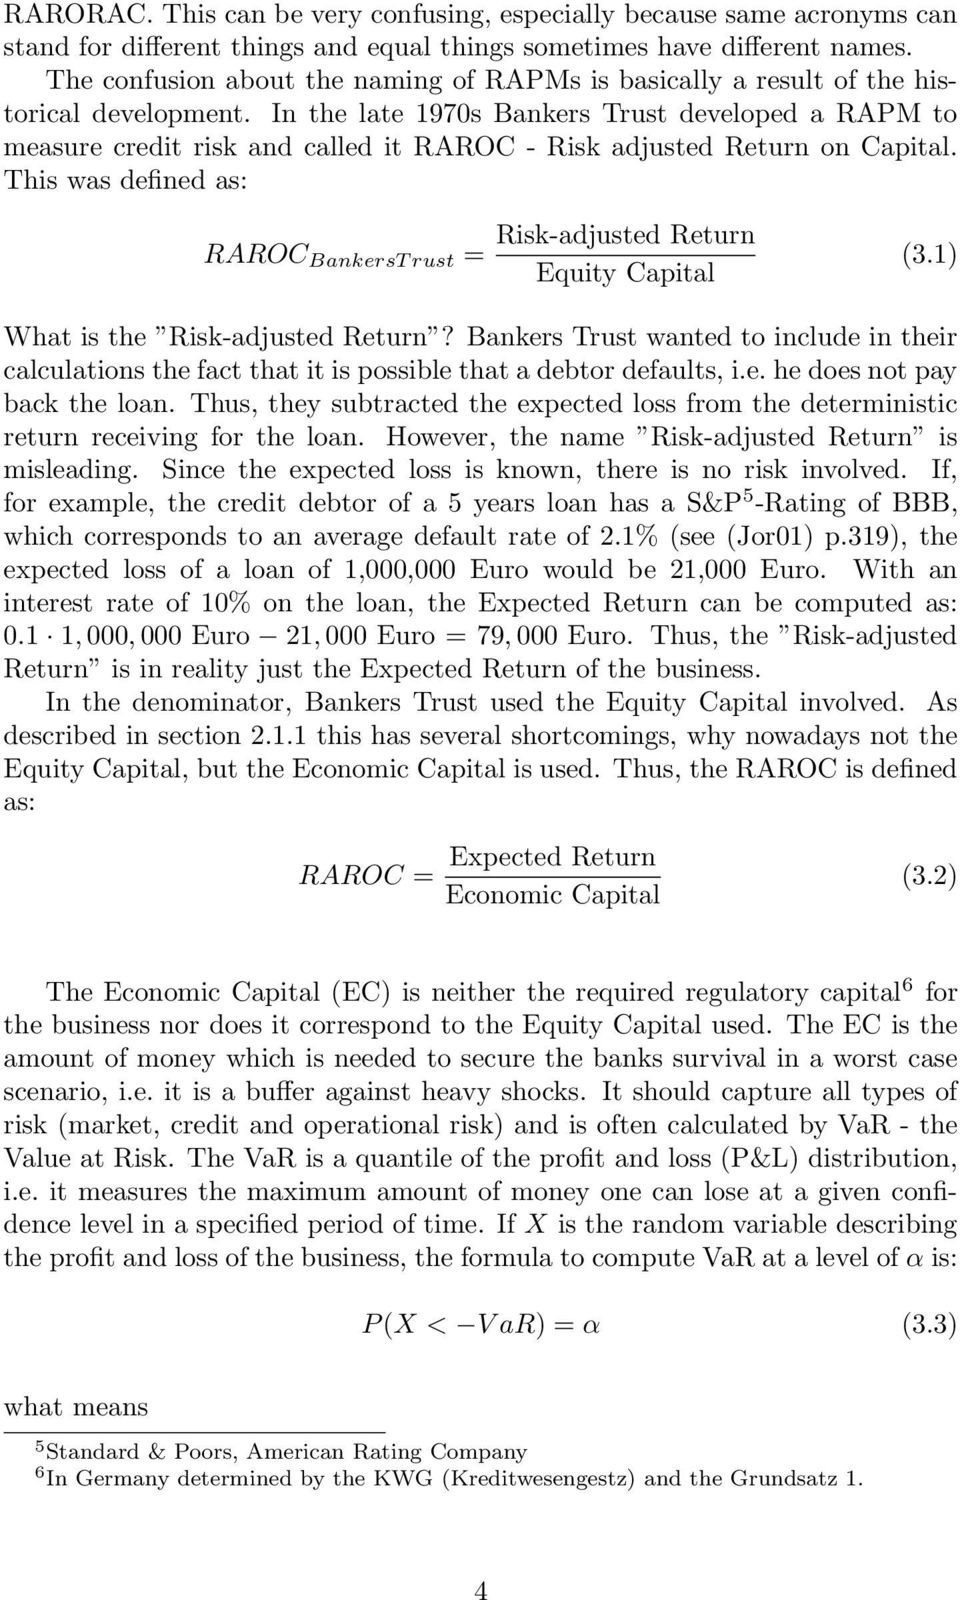 In the late 1970s Bankers Trust developed a RAPM to measure credit risk and called it RAROC - Risk adjusted Return on Capital.